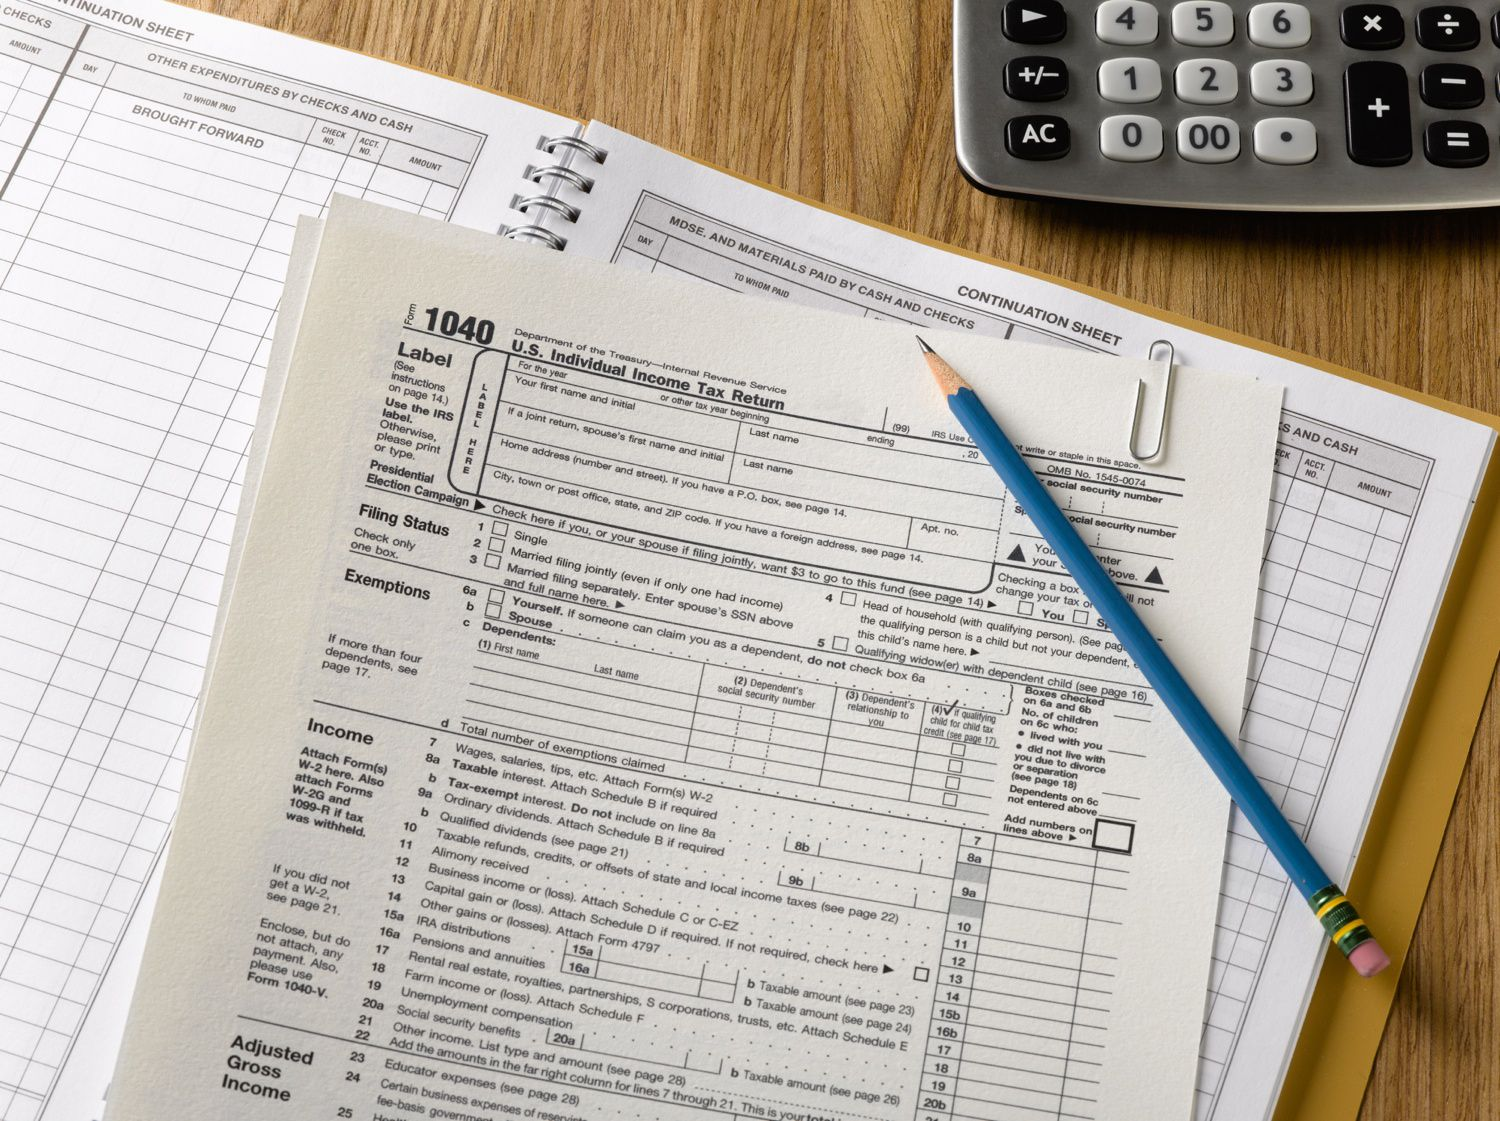 What Forms Do I Need to File My Taxes?